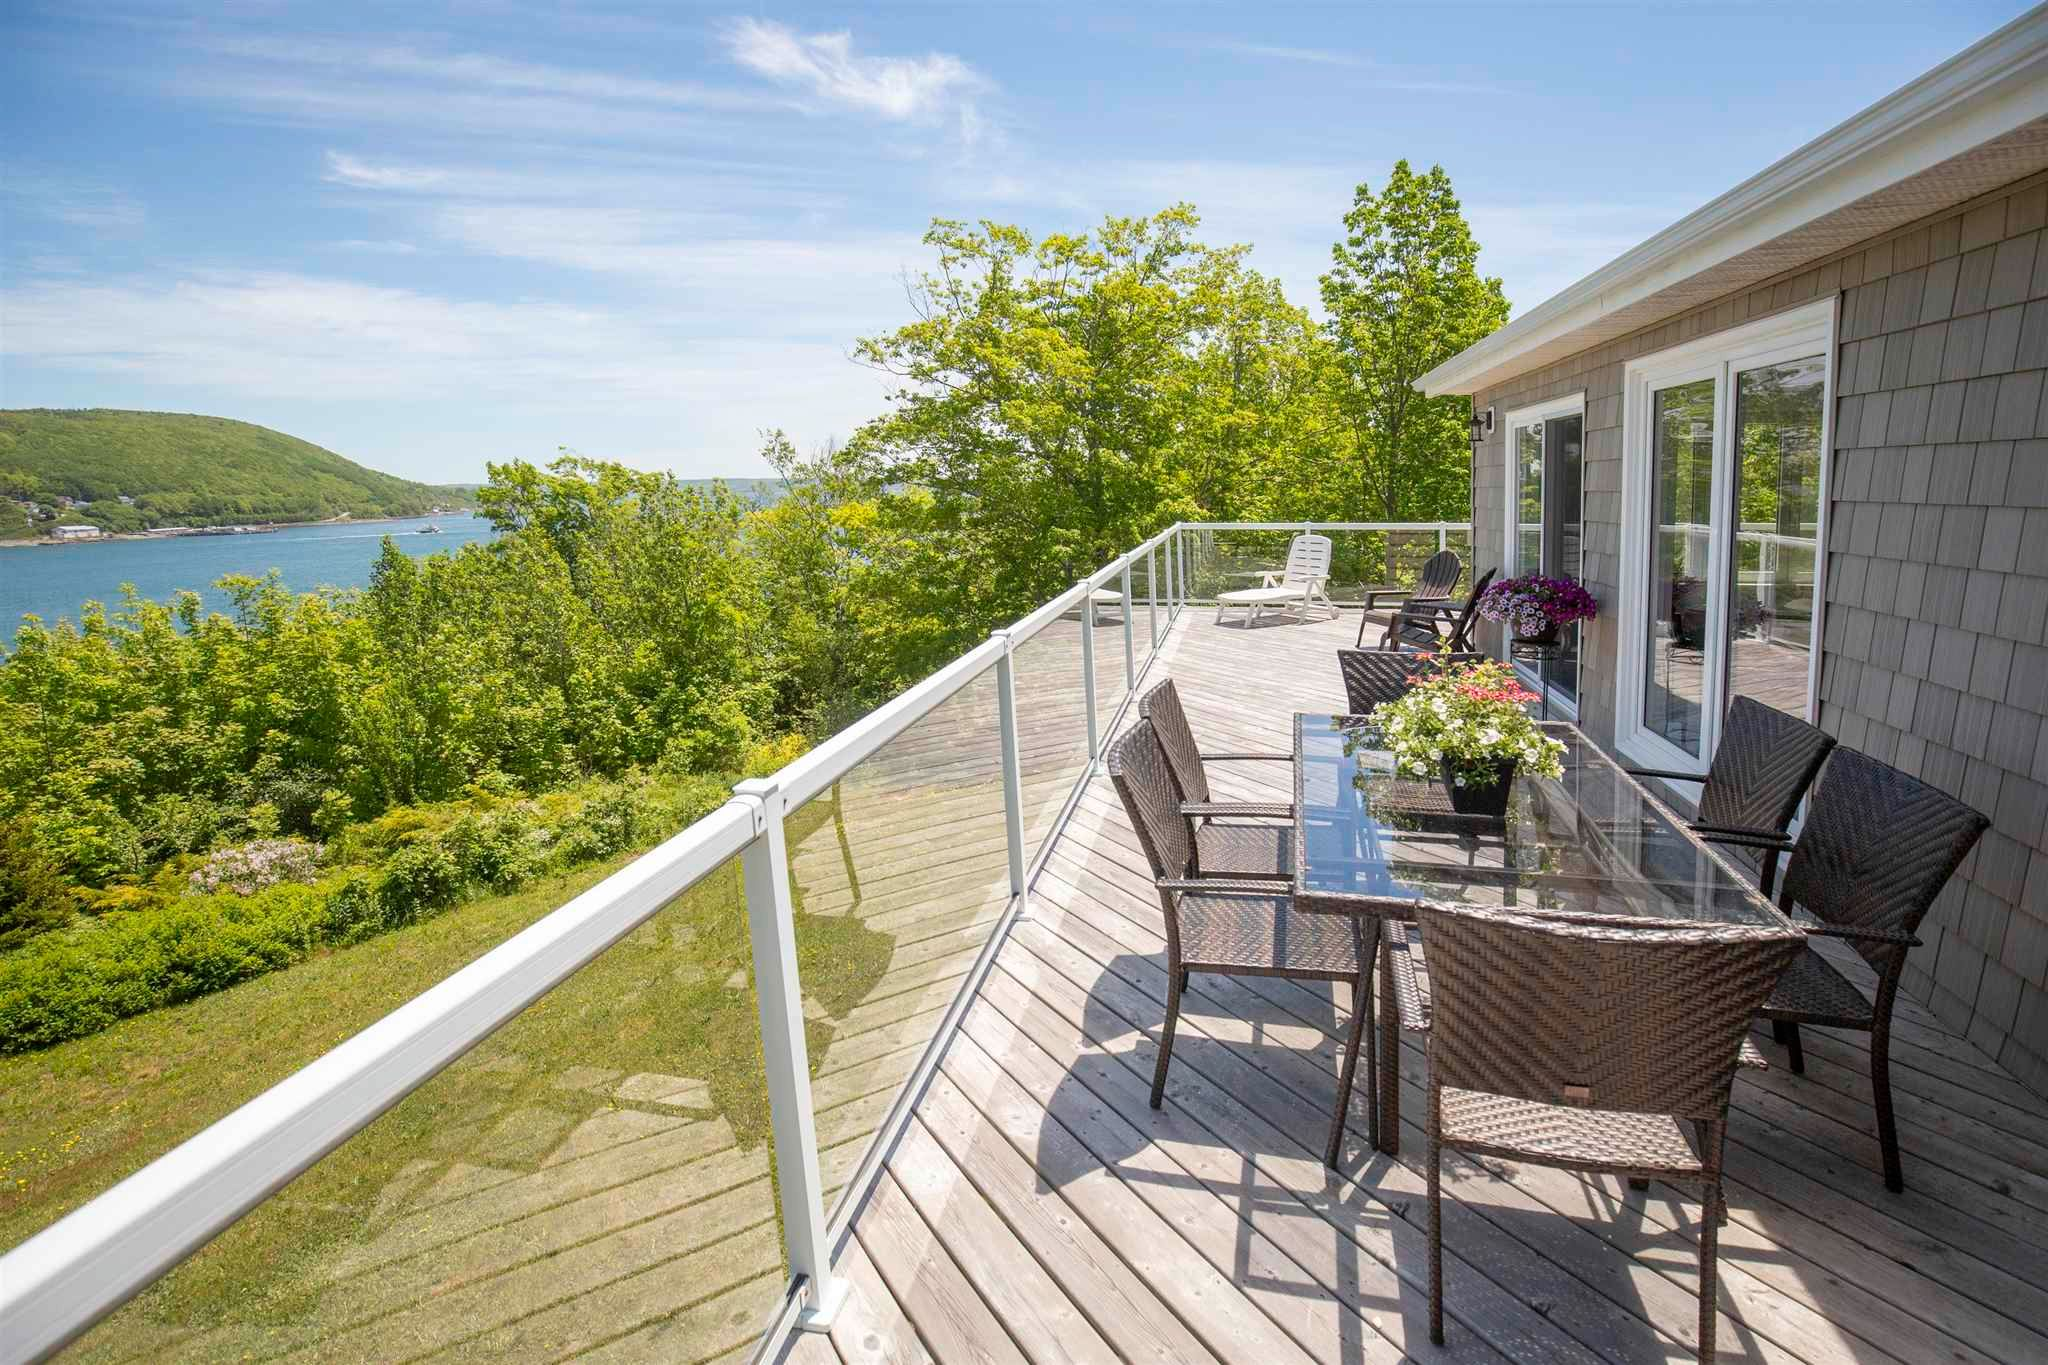 Main Photo: 167 BAYVIEW SHORE Road in Bay View: 401-Digby County Residential for sale (Annapolis Valley)  : MLS®# 202115064